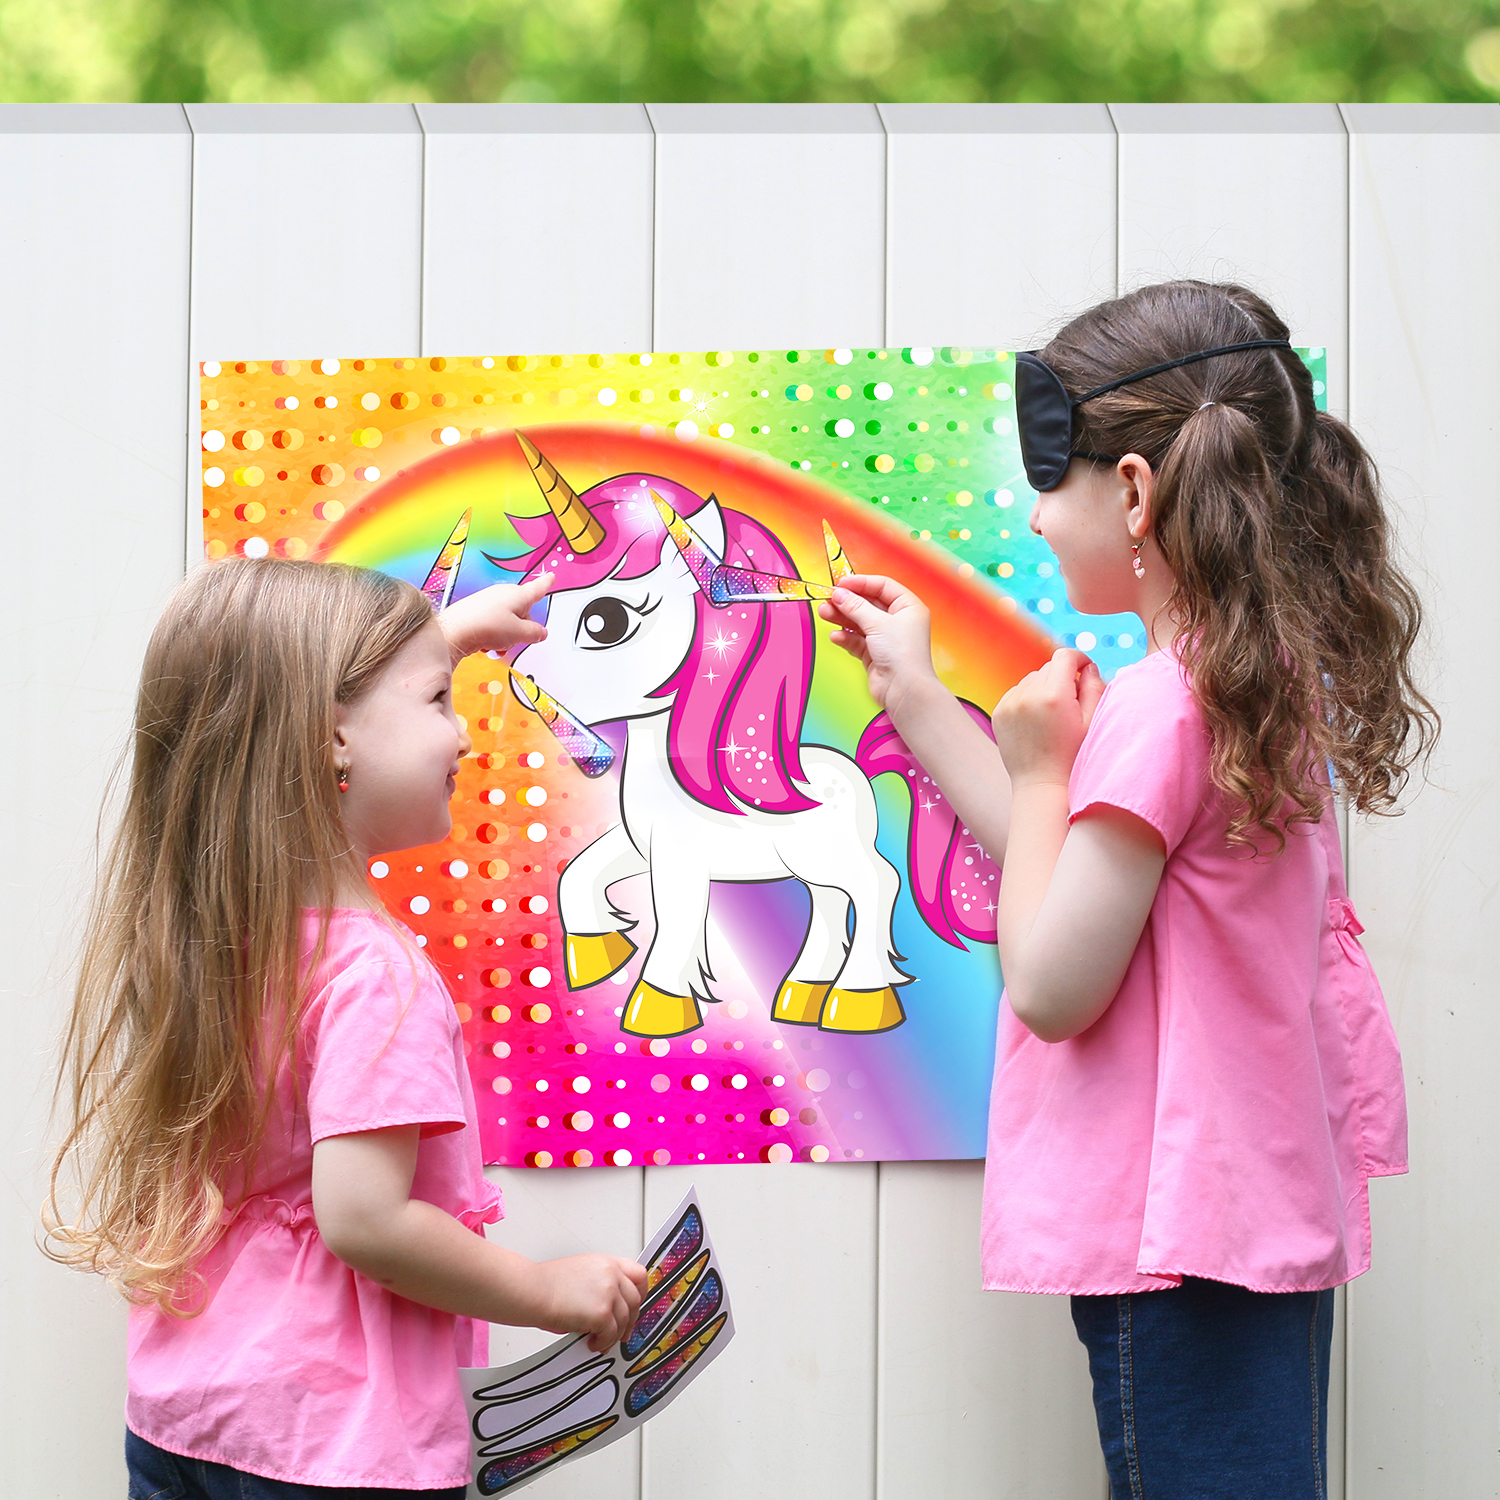 Pin The Horn On The Unicorn Party Favor Game For Kids Includes 24 Reusable Sticker Horns 2 Blindfolds 10 Adhesive Glue Dots Walmart Com Walmart Com